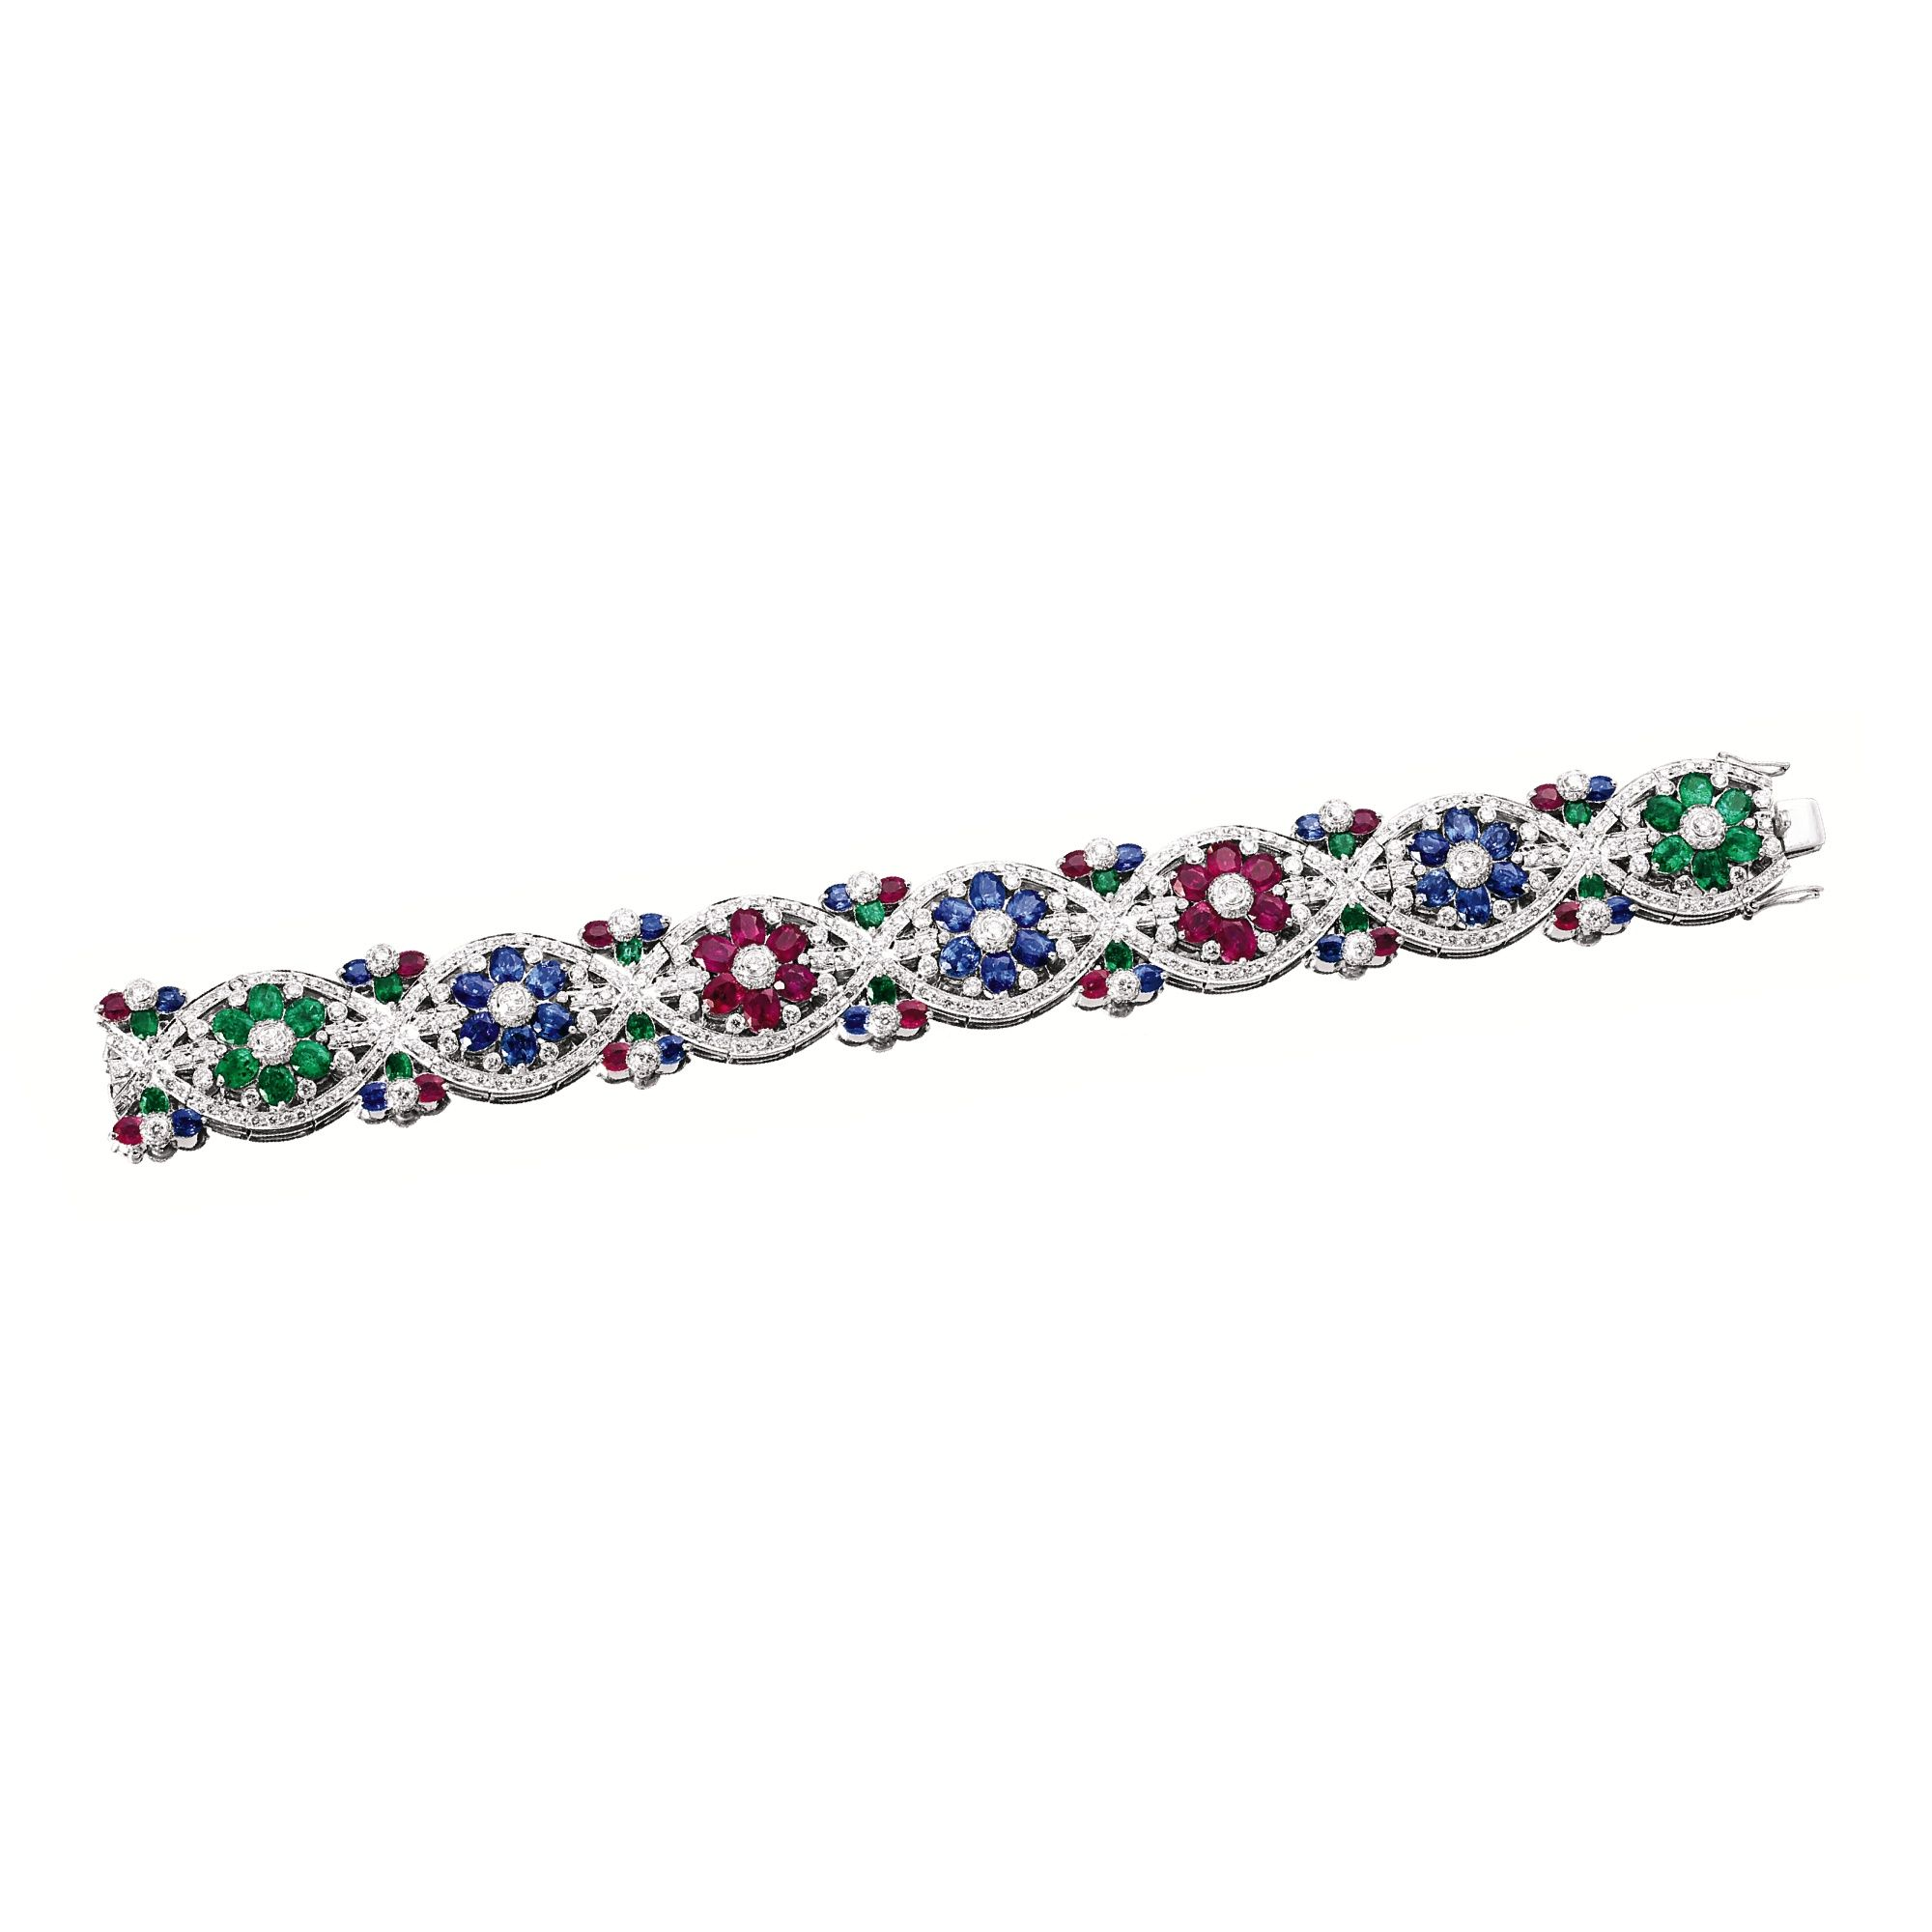 GEM-SET AND DIAMOND BRACELET The articulated strap composed of seven navette-shaped motifs, each centring on a brilliant-cut diamond, surrounded by oval emeralds, rubies and sapphires, embellished by circular-cut diamonds, the emeralds, rubies, sapphires and diamonds weighing 3.00, 4.20, 6.00 and 3.00 carats respectively, mounted in 18 karat white gold.